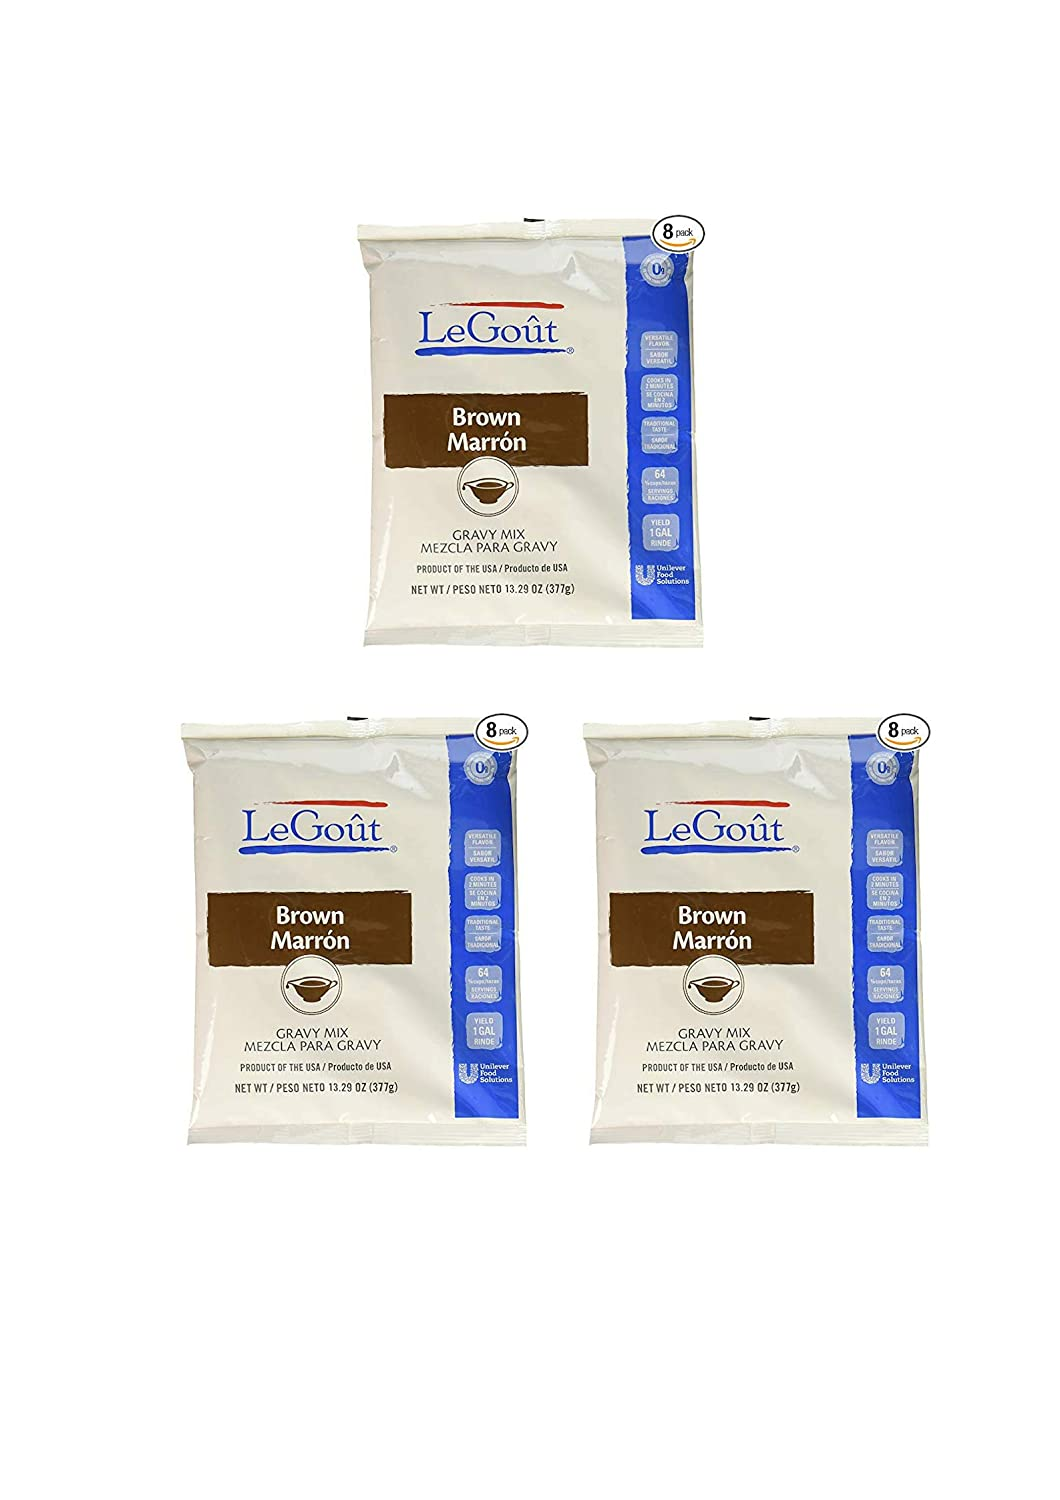 Amazon.com : LeGout Gravy Mix Brown 13.29 oz, Pack of 8 (24 pack) : Grocery & Gourmet Food